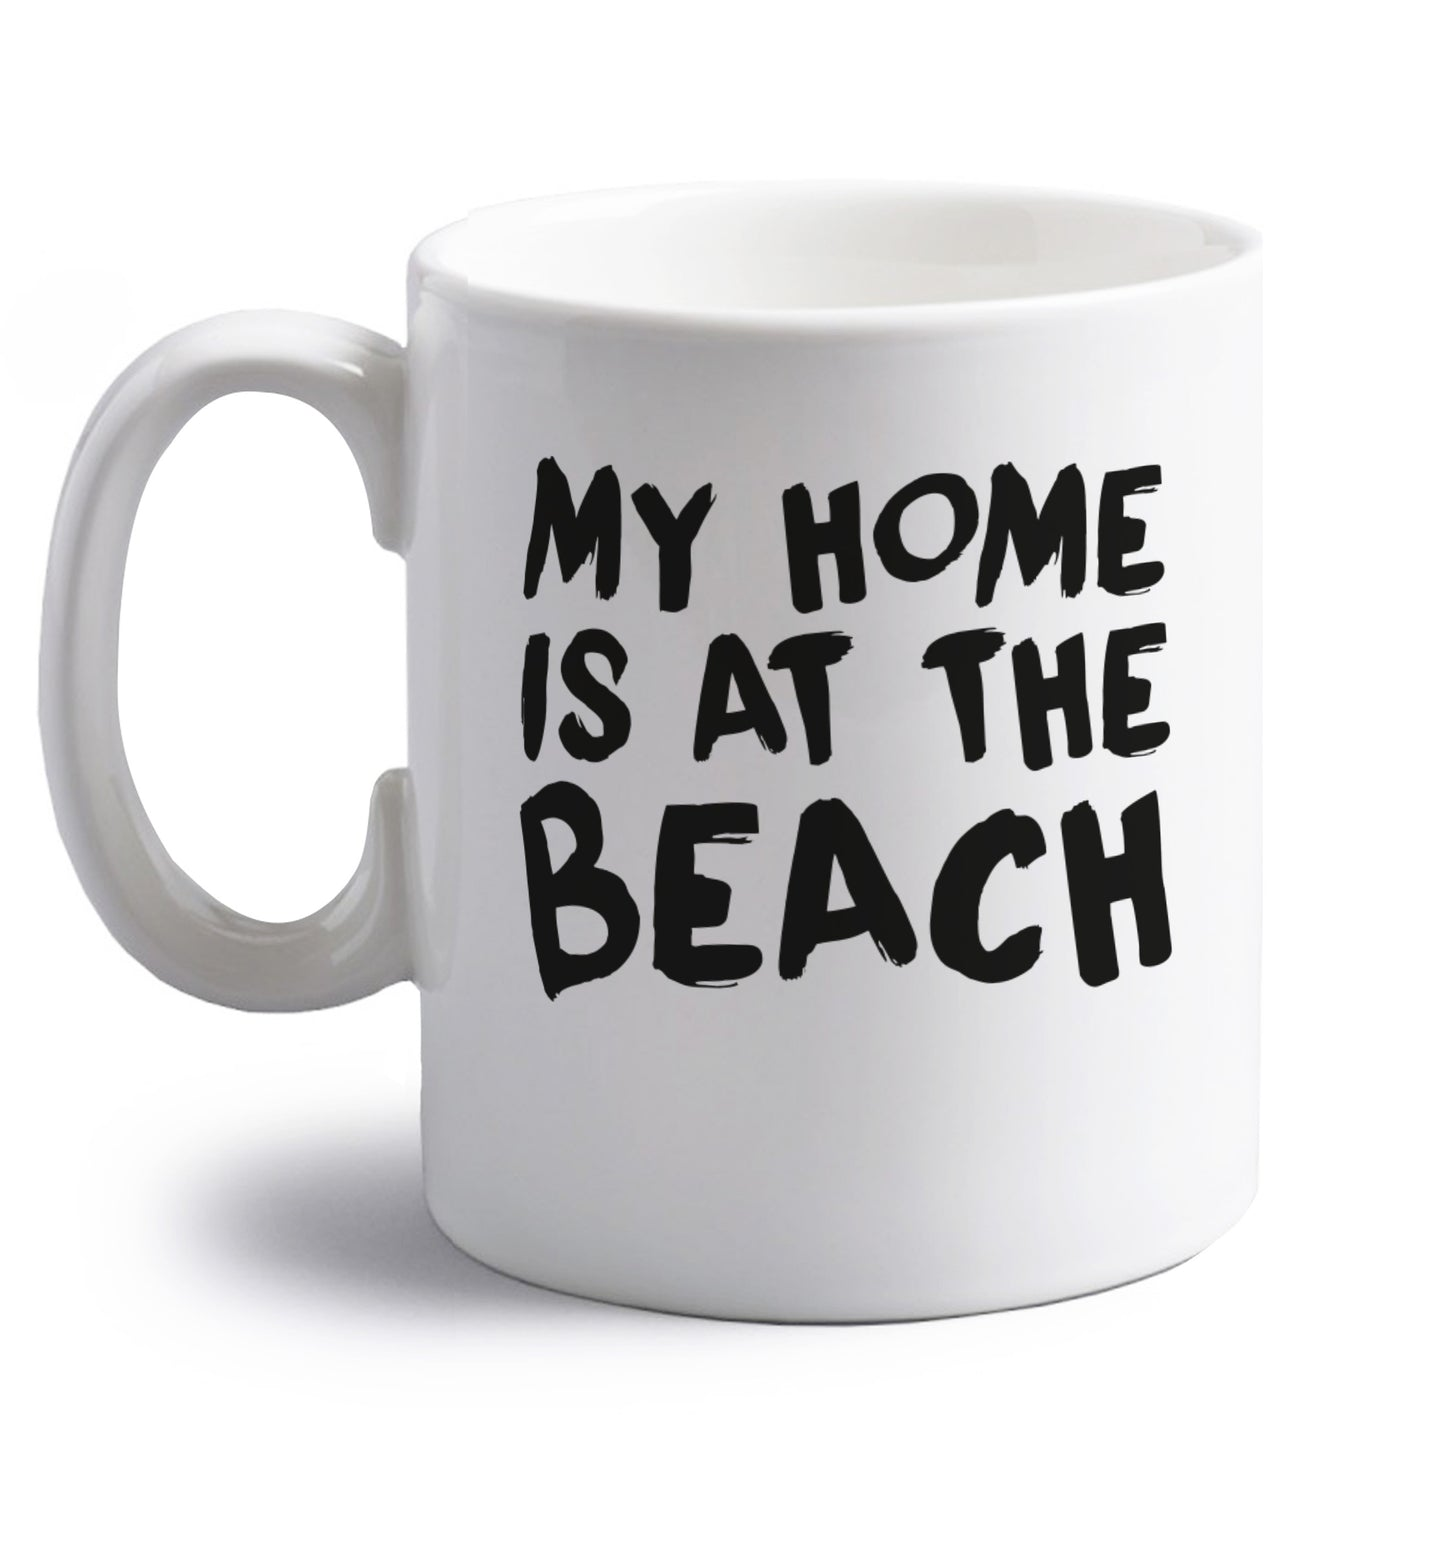 My home is at the beach right handed white ceramic mug